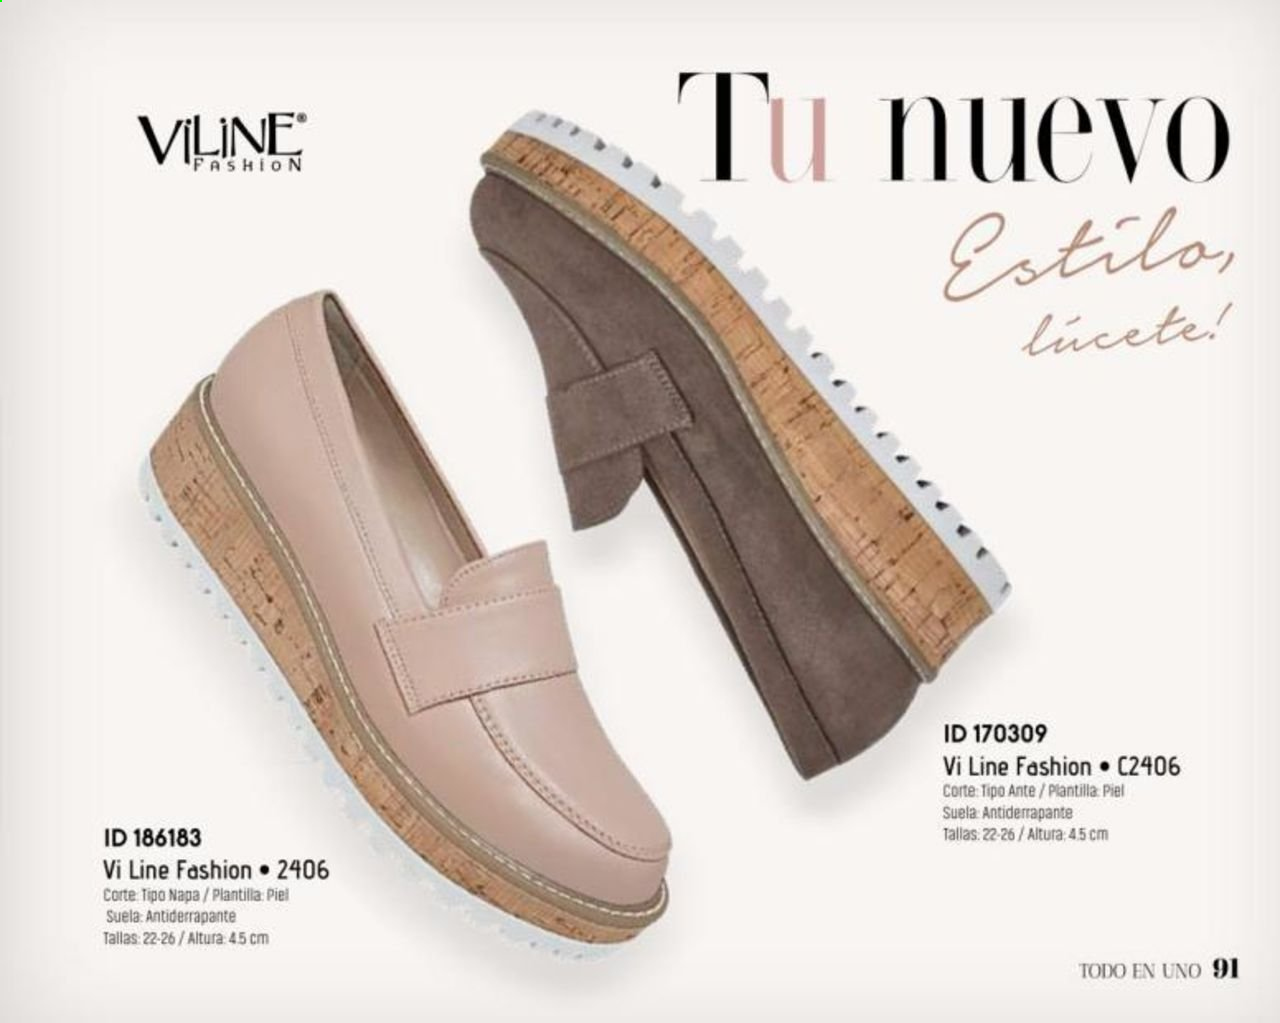 Oferta vigente Price Shoes. Página 89.